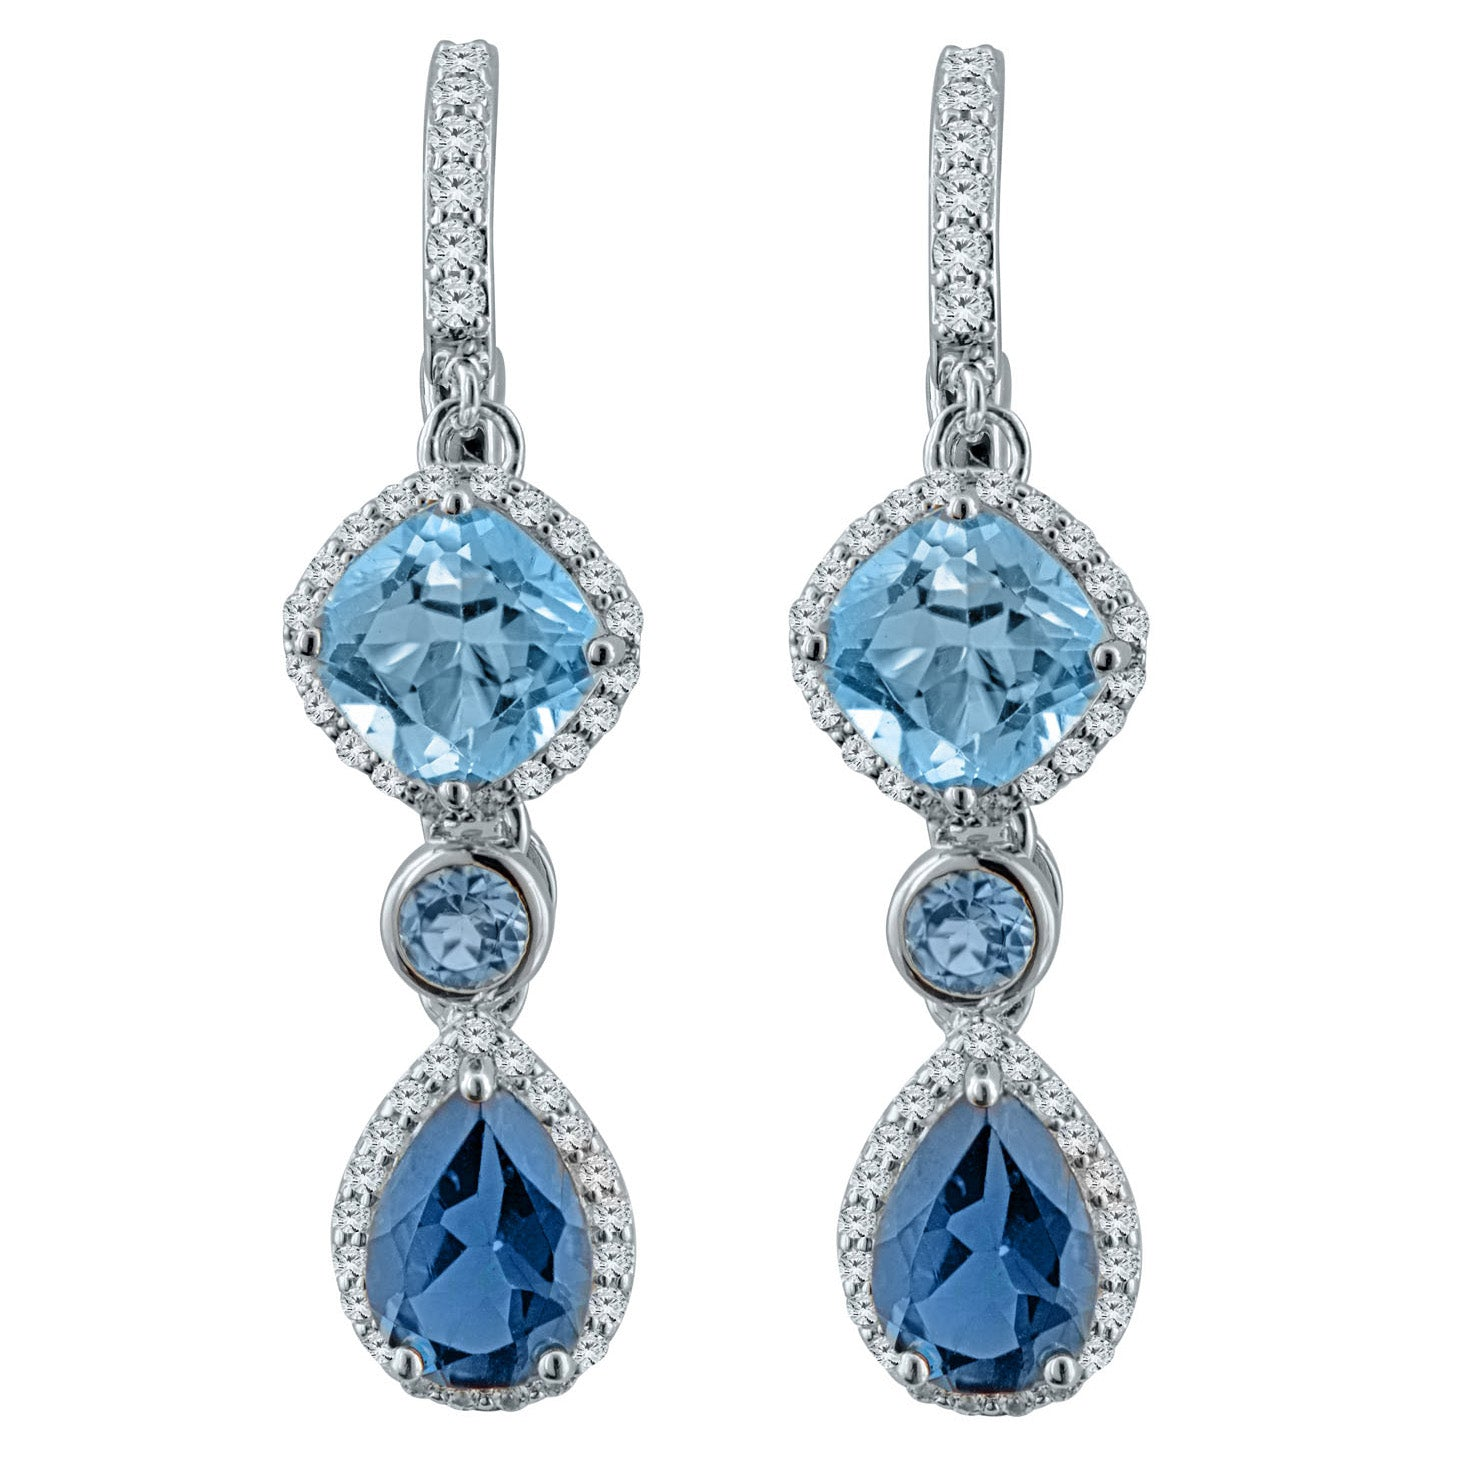 Shades of Blue Topaz Earrings with White Topaz Accents